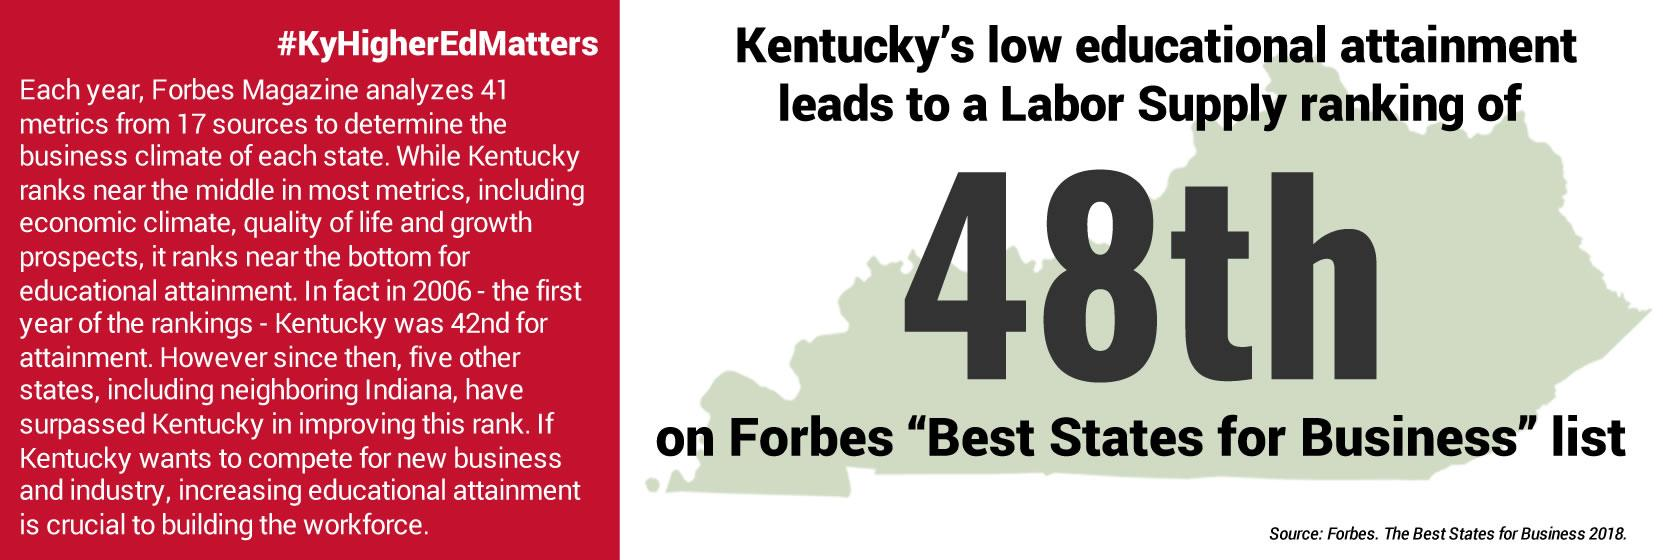 Kentucky needs to improve educational attainment to draw businesses.